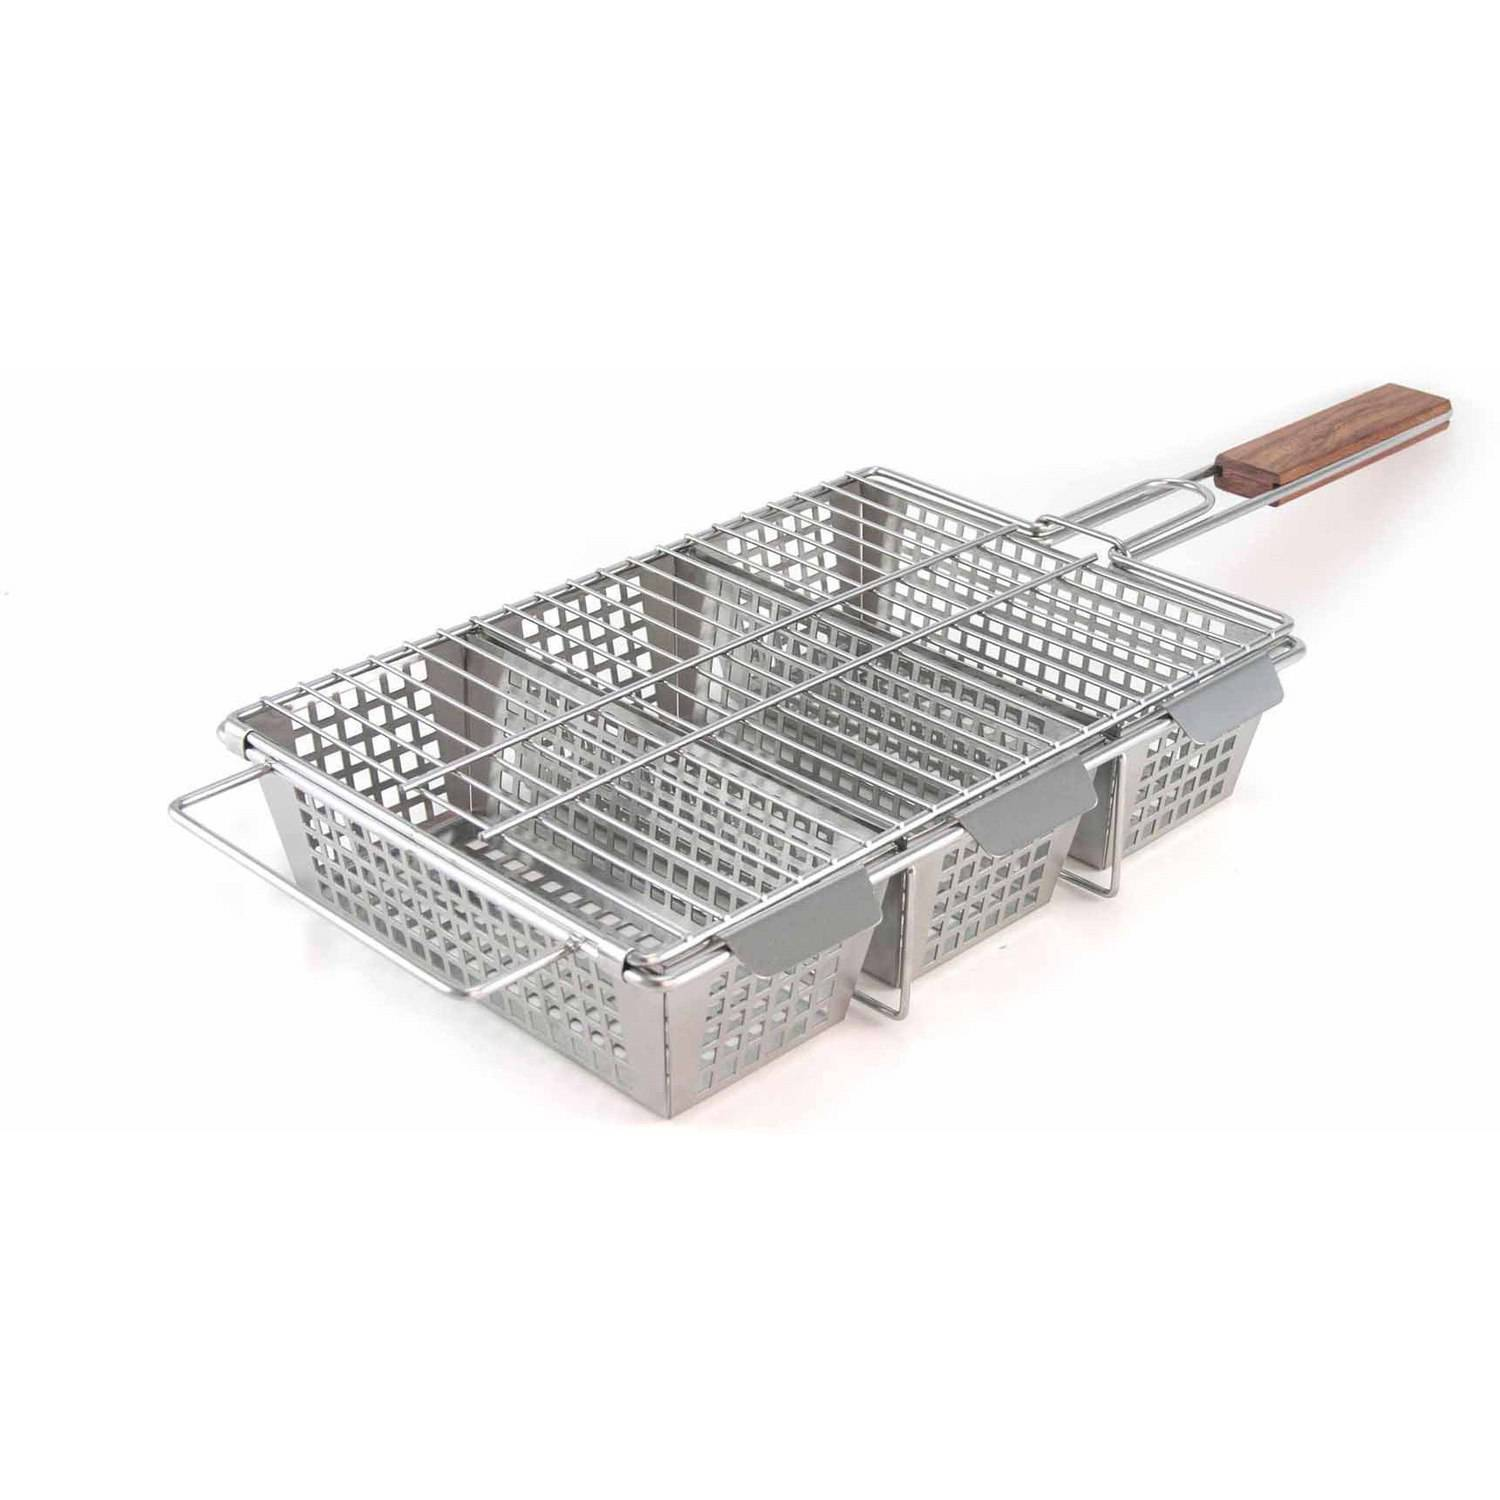 The Charcoal Companion Stainless Steel 3-Compartment Grilling Basket, CC3129